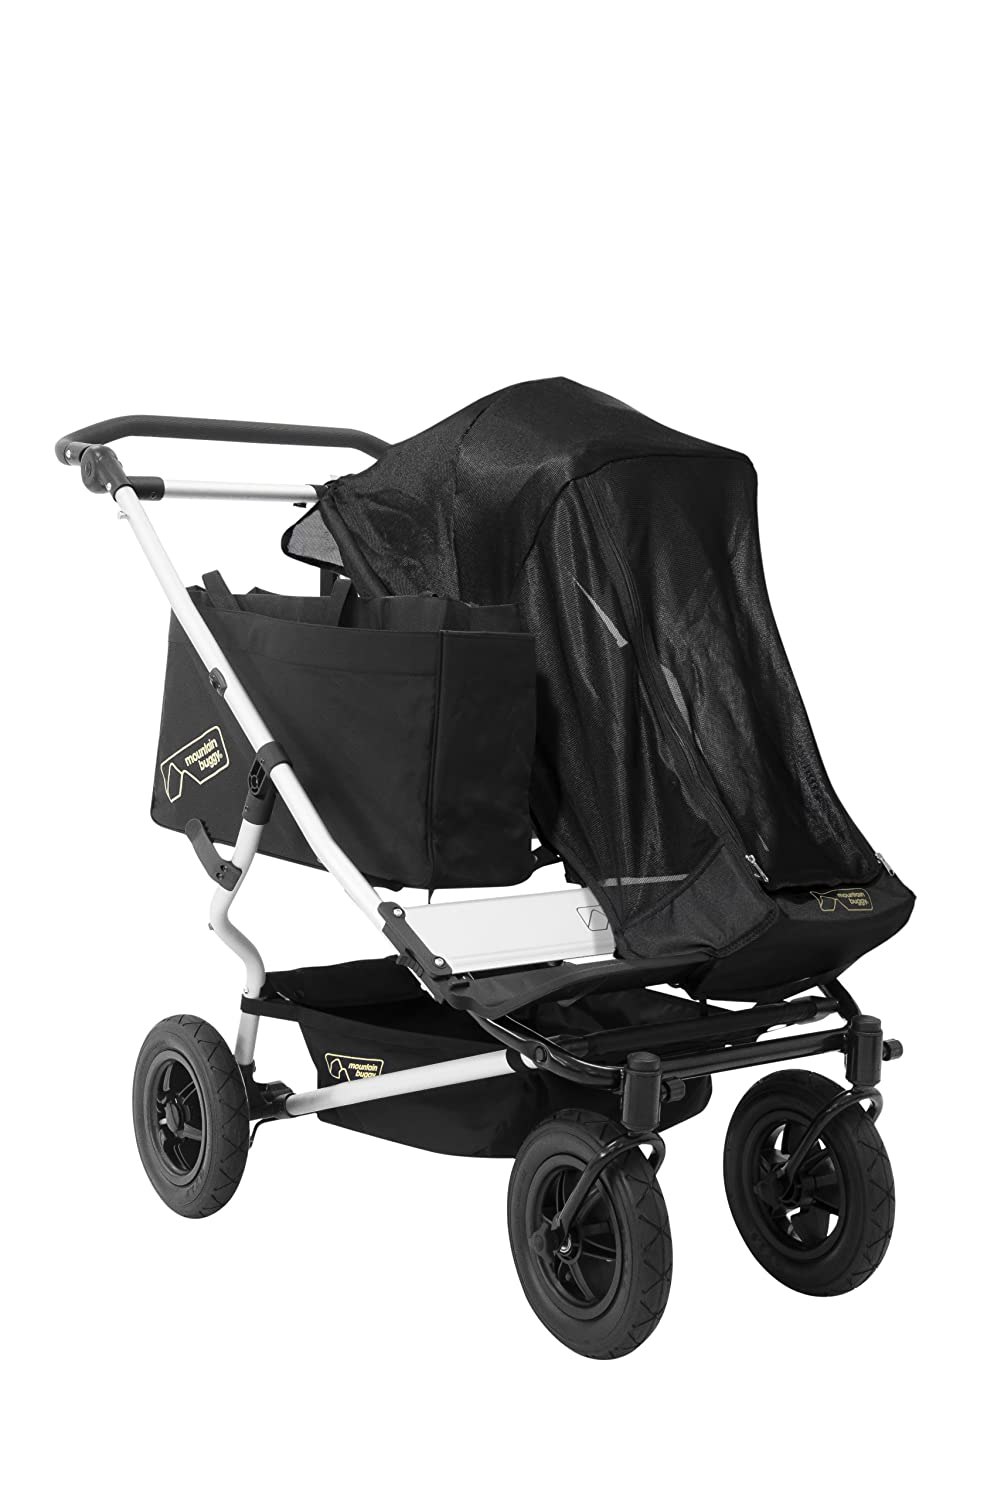 Mountain Buggy Single Sun Cover for Duet Double Stroller, Black MB1-S2SM1___200_USA